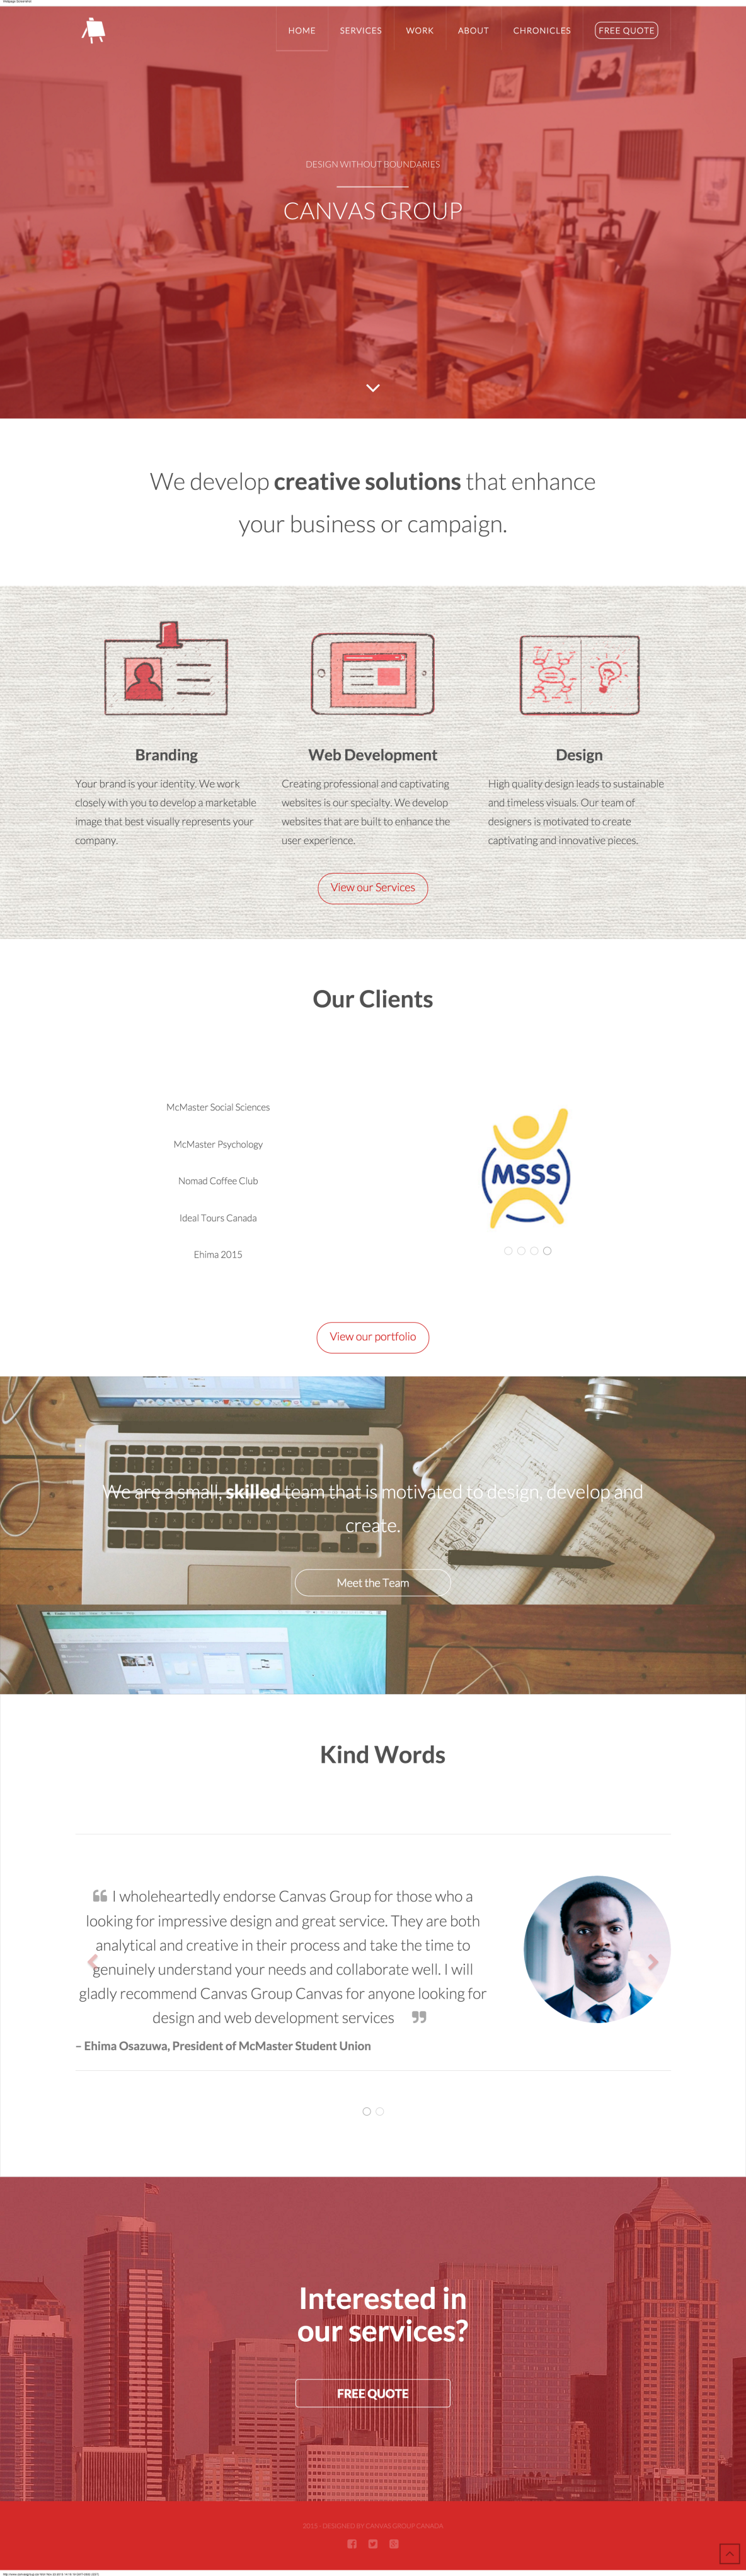 Canvas Group   Design Without Boundaries